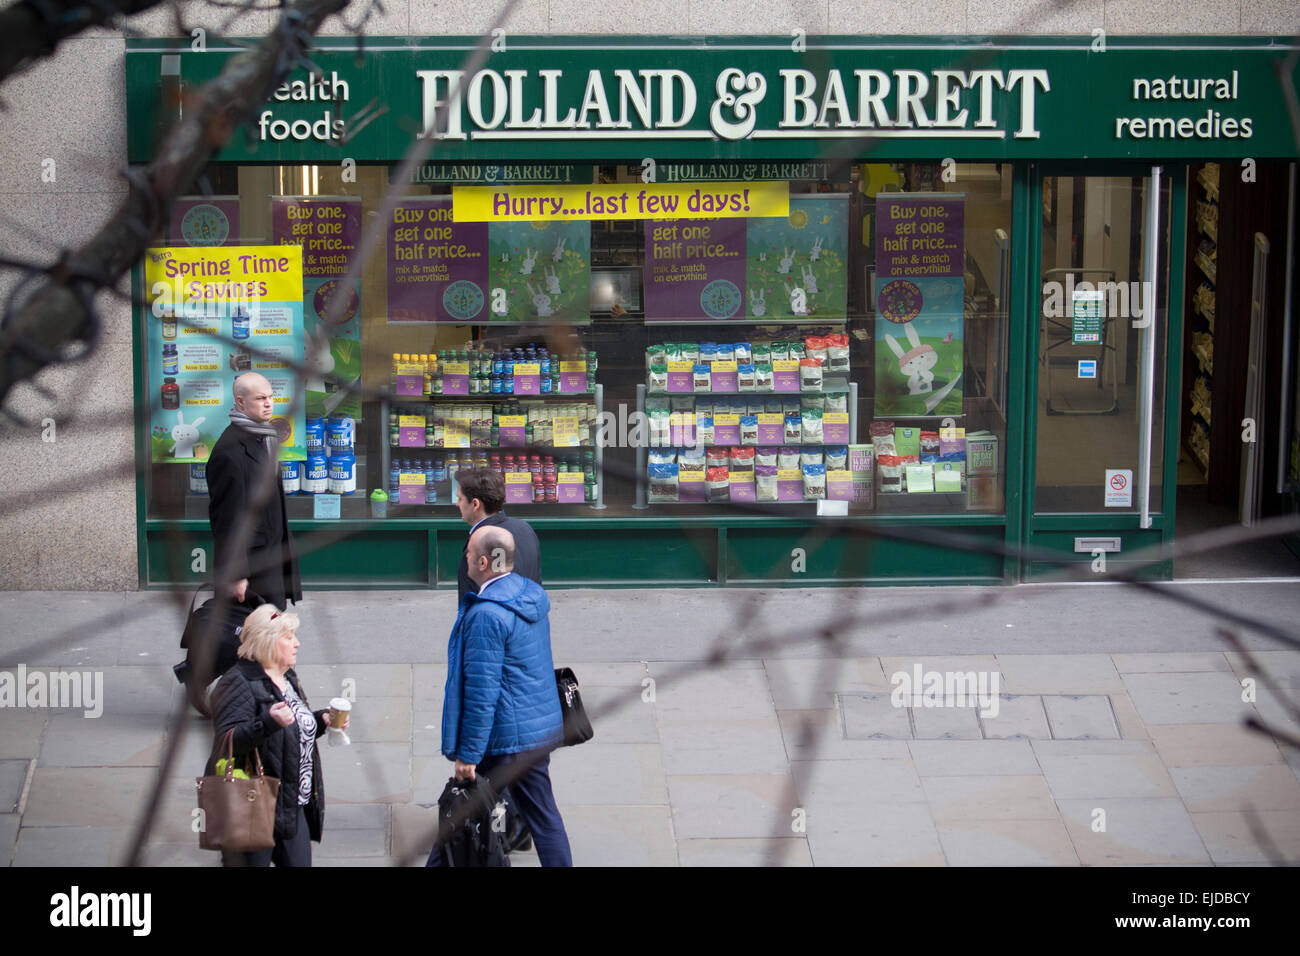 Holland and Barrett health foods and natural remedies outlet, London - Stock Image